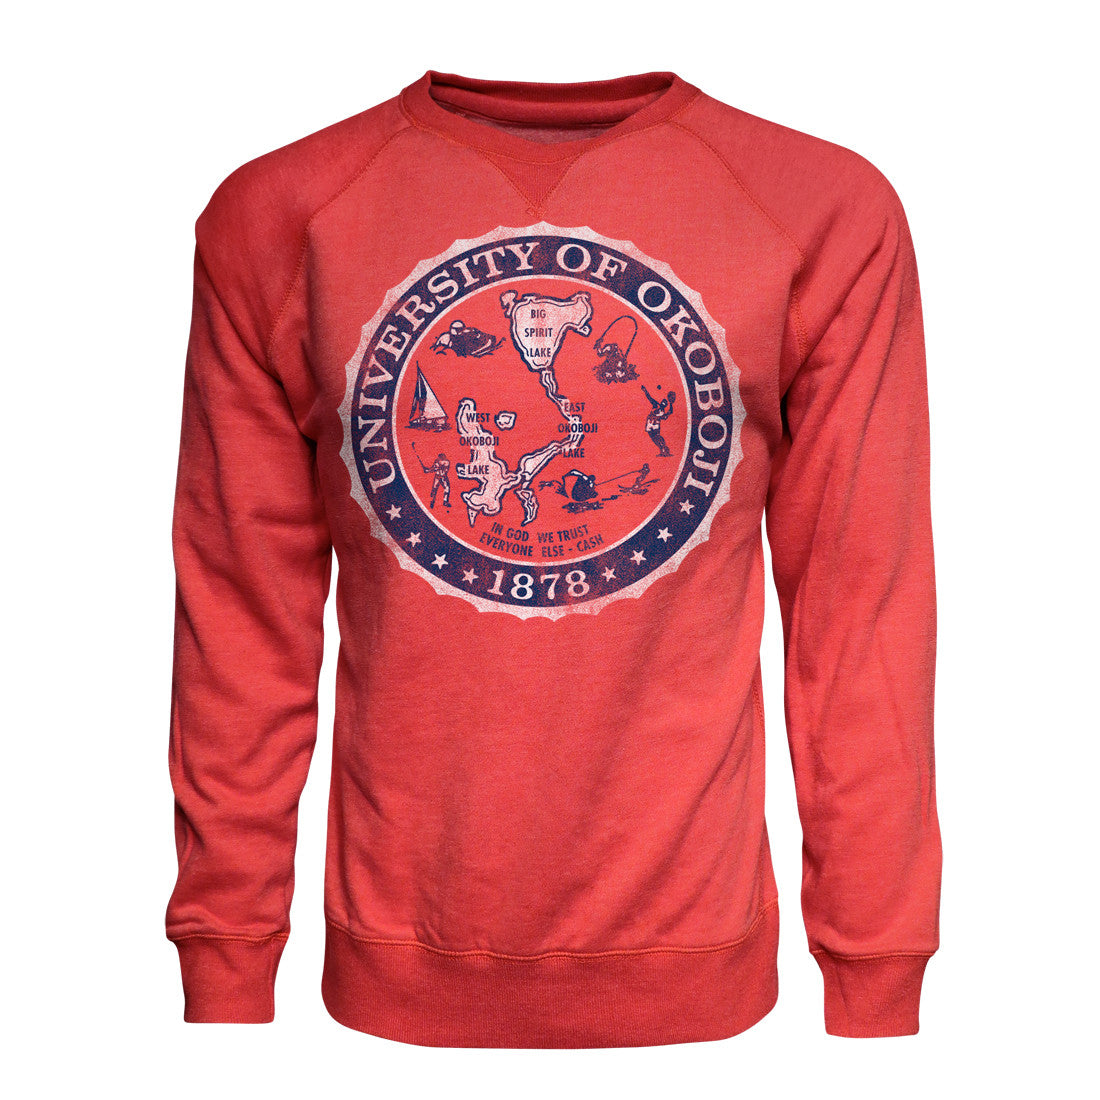 U of Okoboji Vintage Fleece Crew - Red